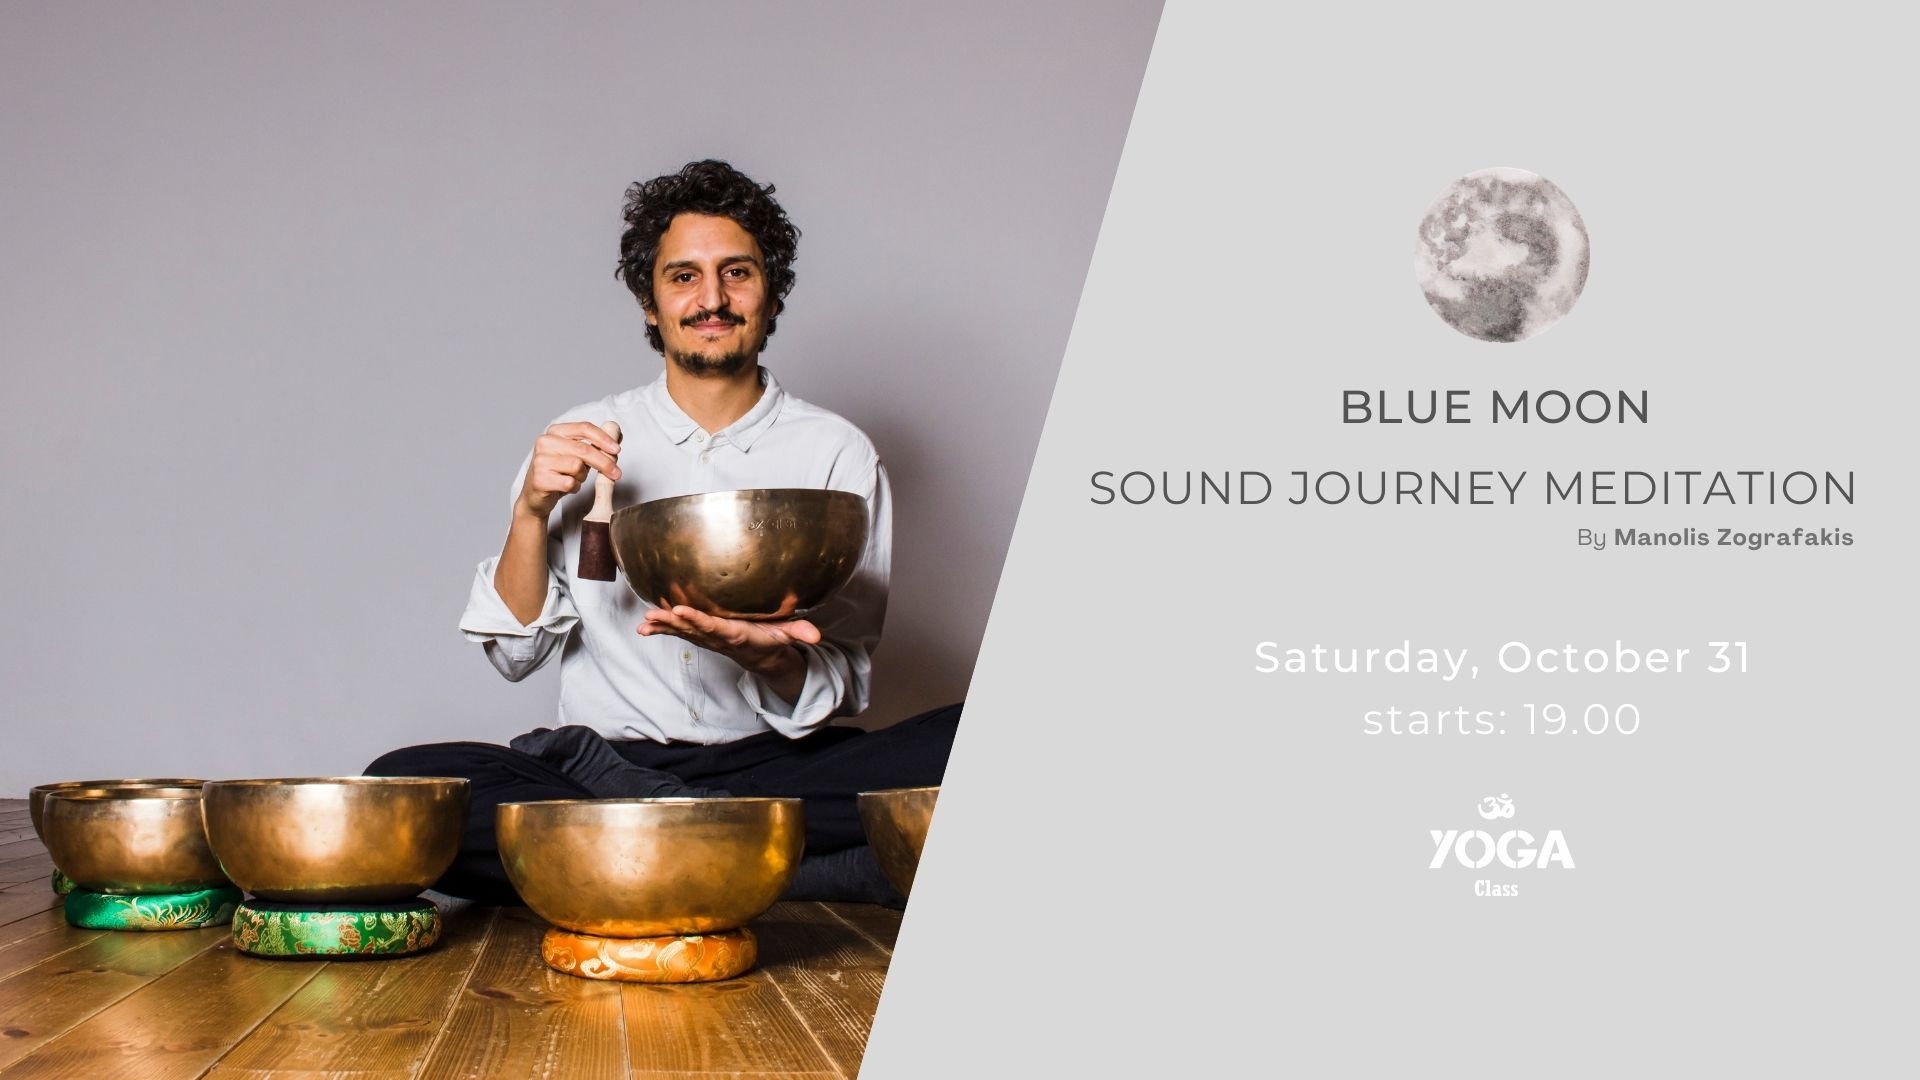 Sound Journey Meditation by Manolis Zografakis – Oct 31, 2020